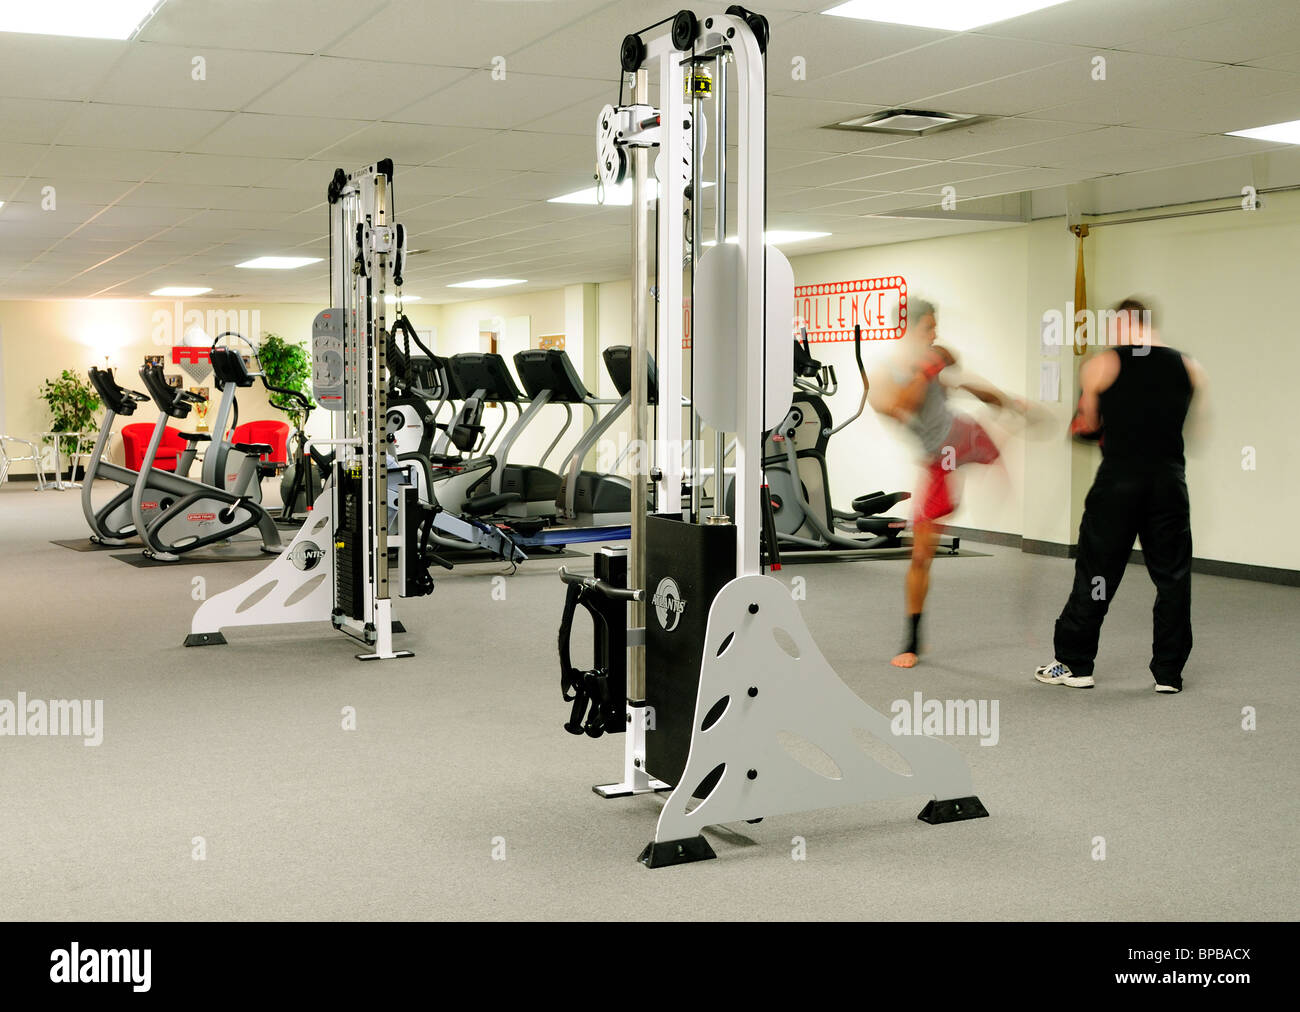 Interior Of A Commercial Gym With two People Kick Boxing - Stock Image